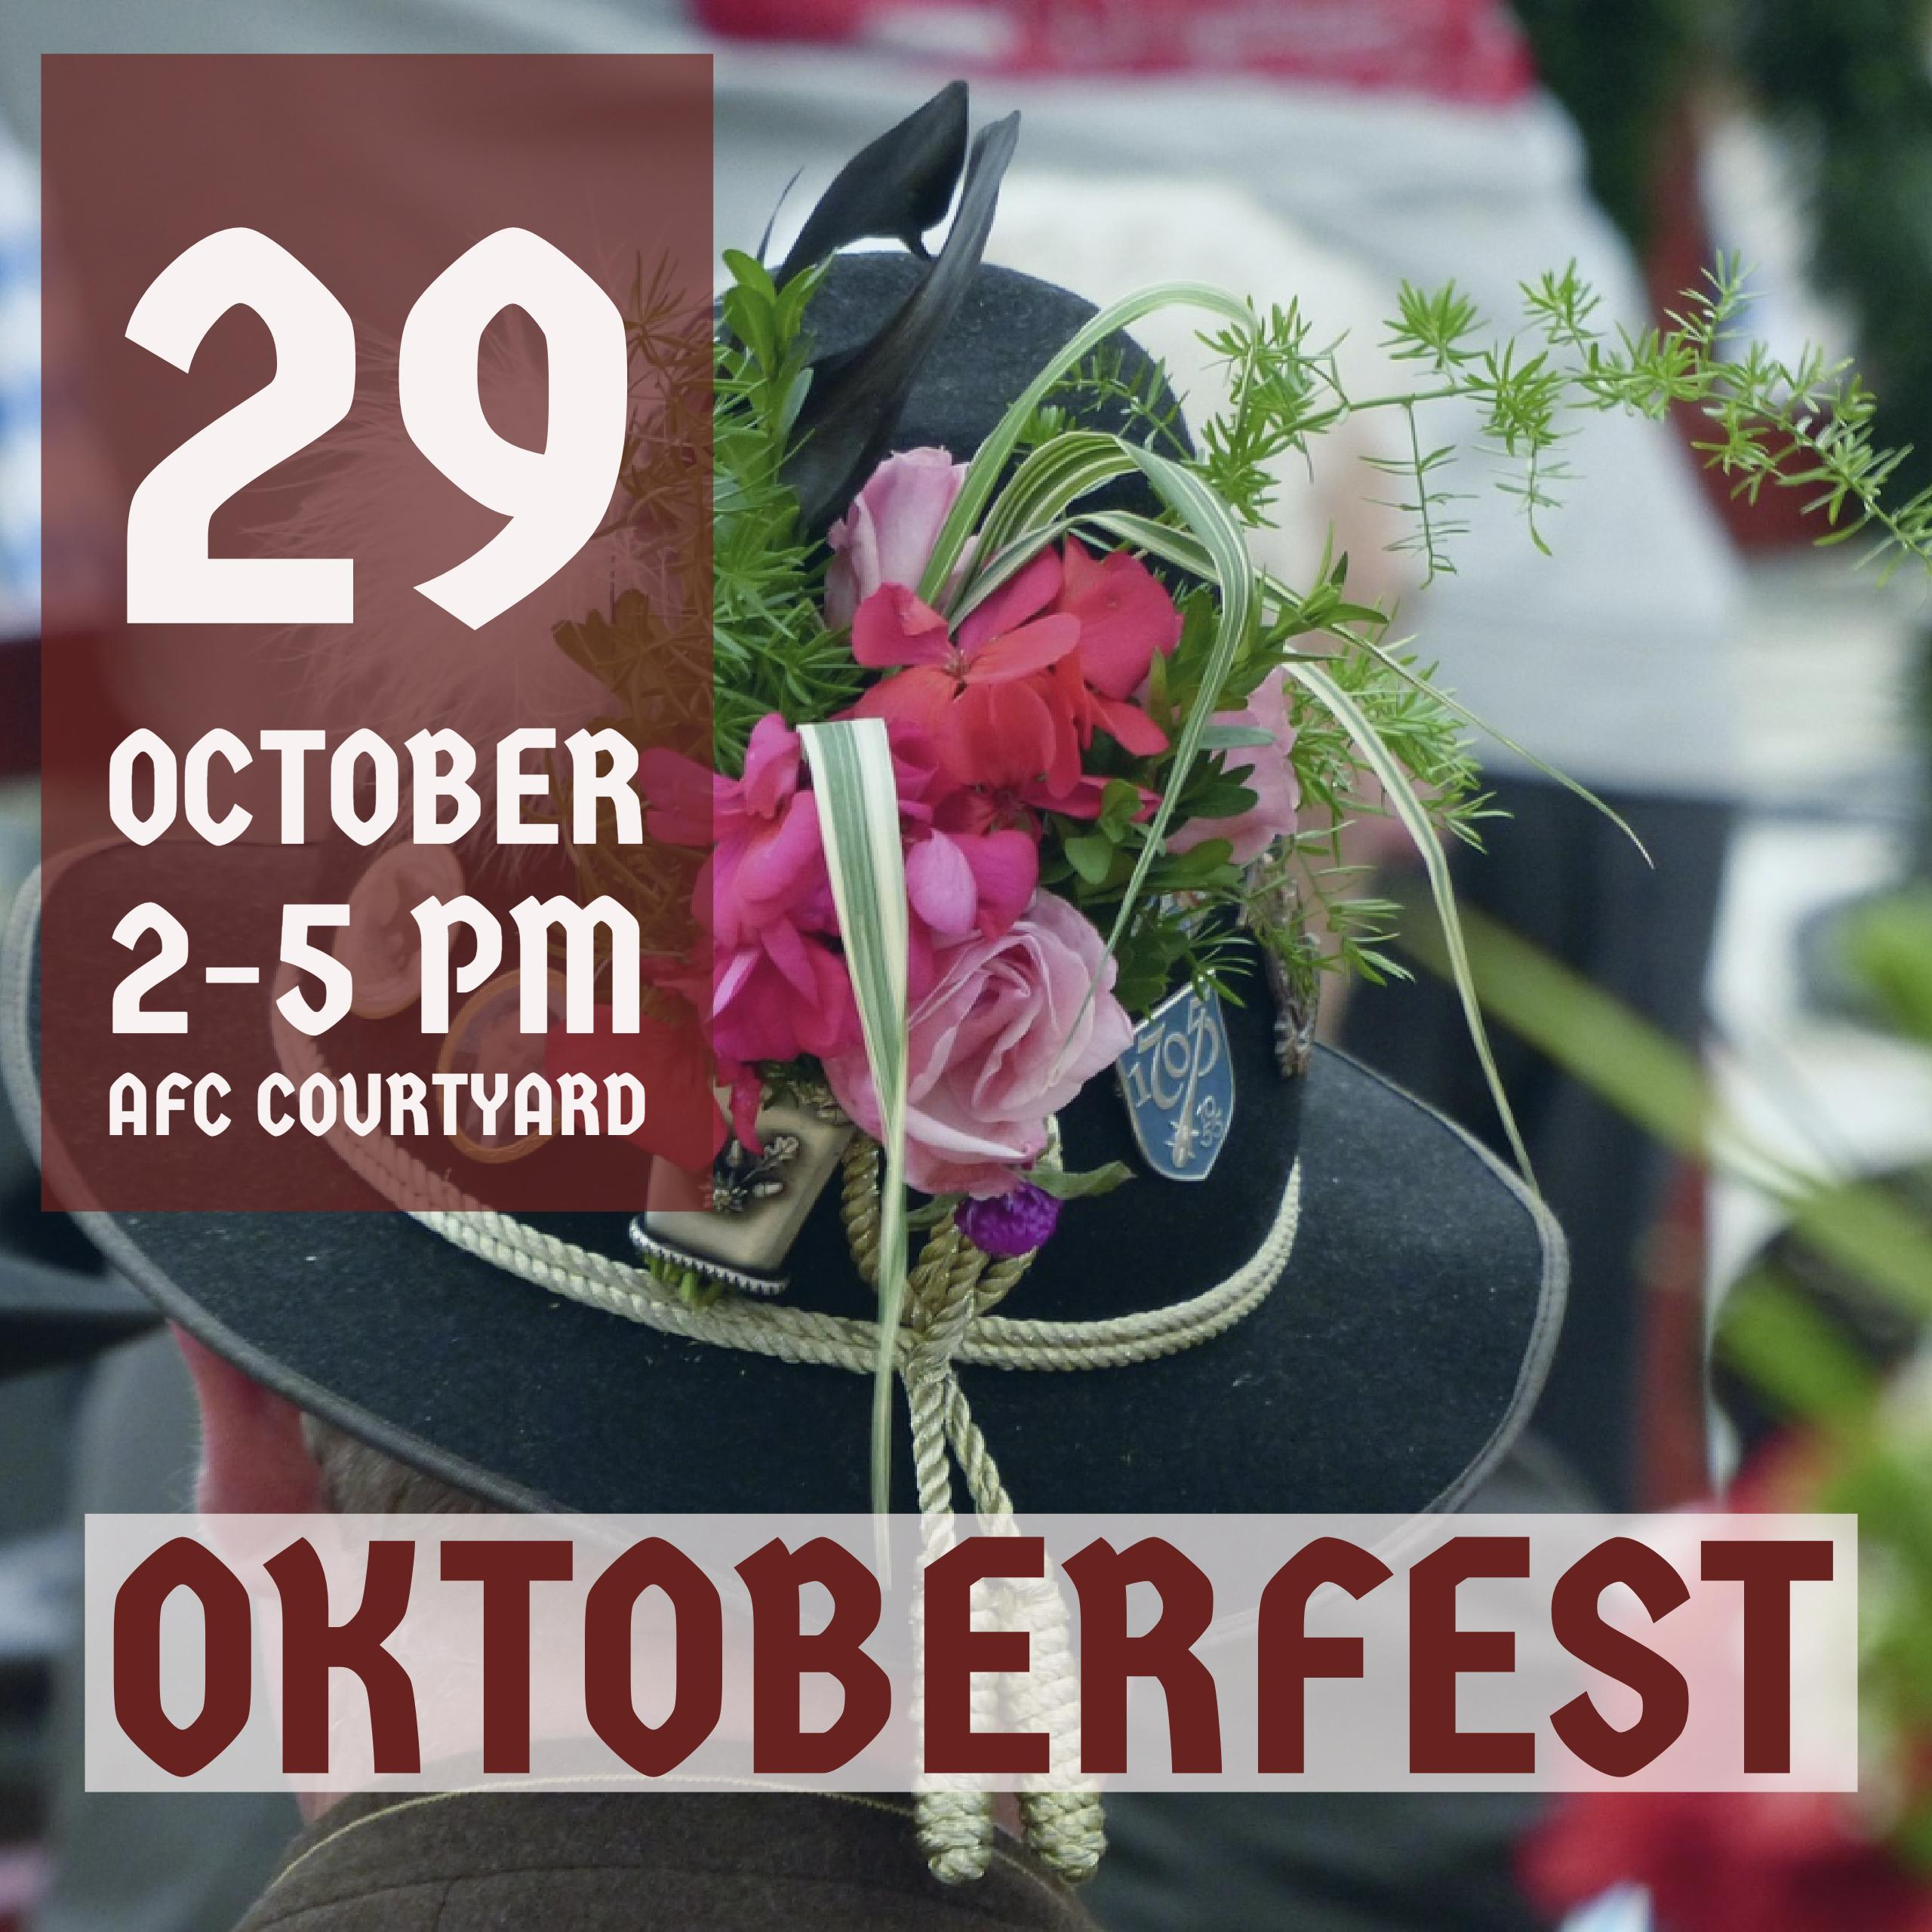 Oktoberfest – Sunday, October 29